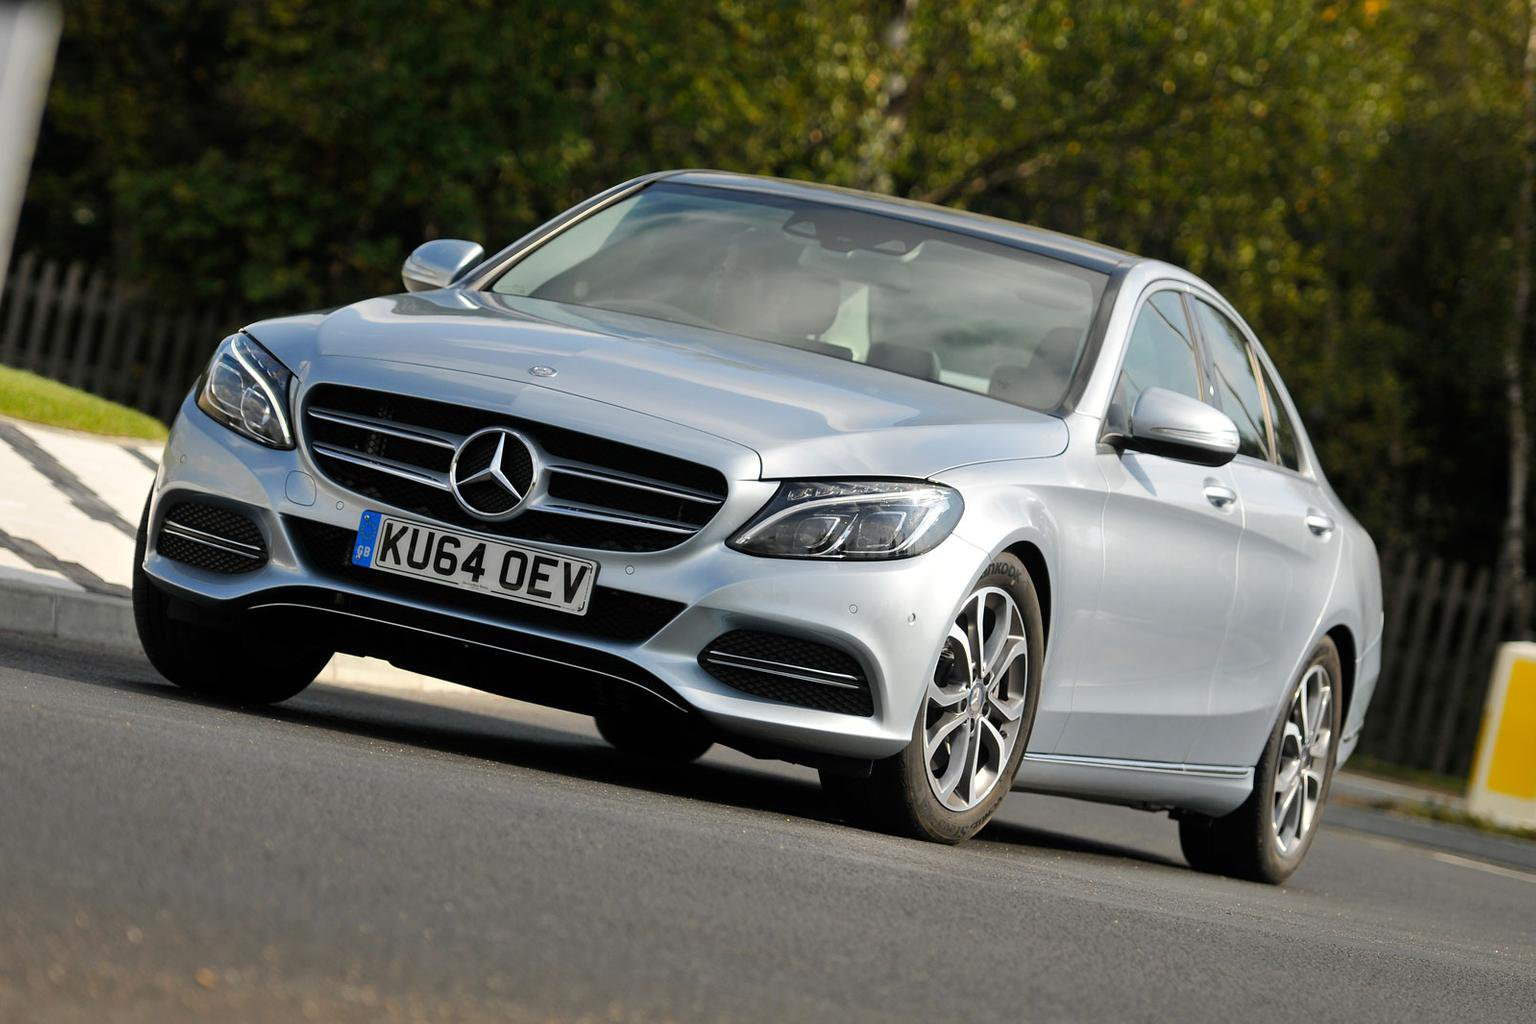 2014 Mercedes C-Class C300 Bluetec Hybrid | What Car?